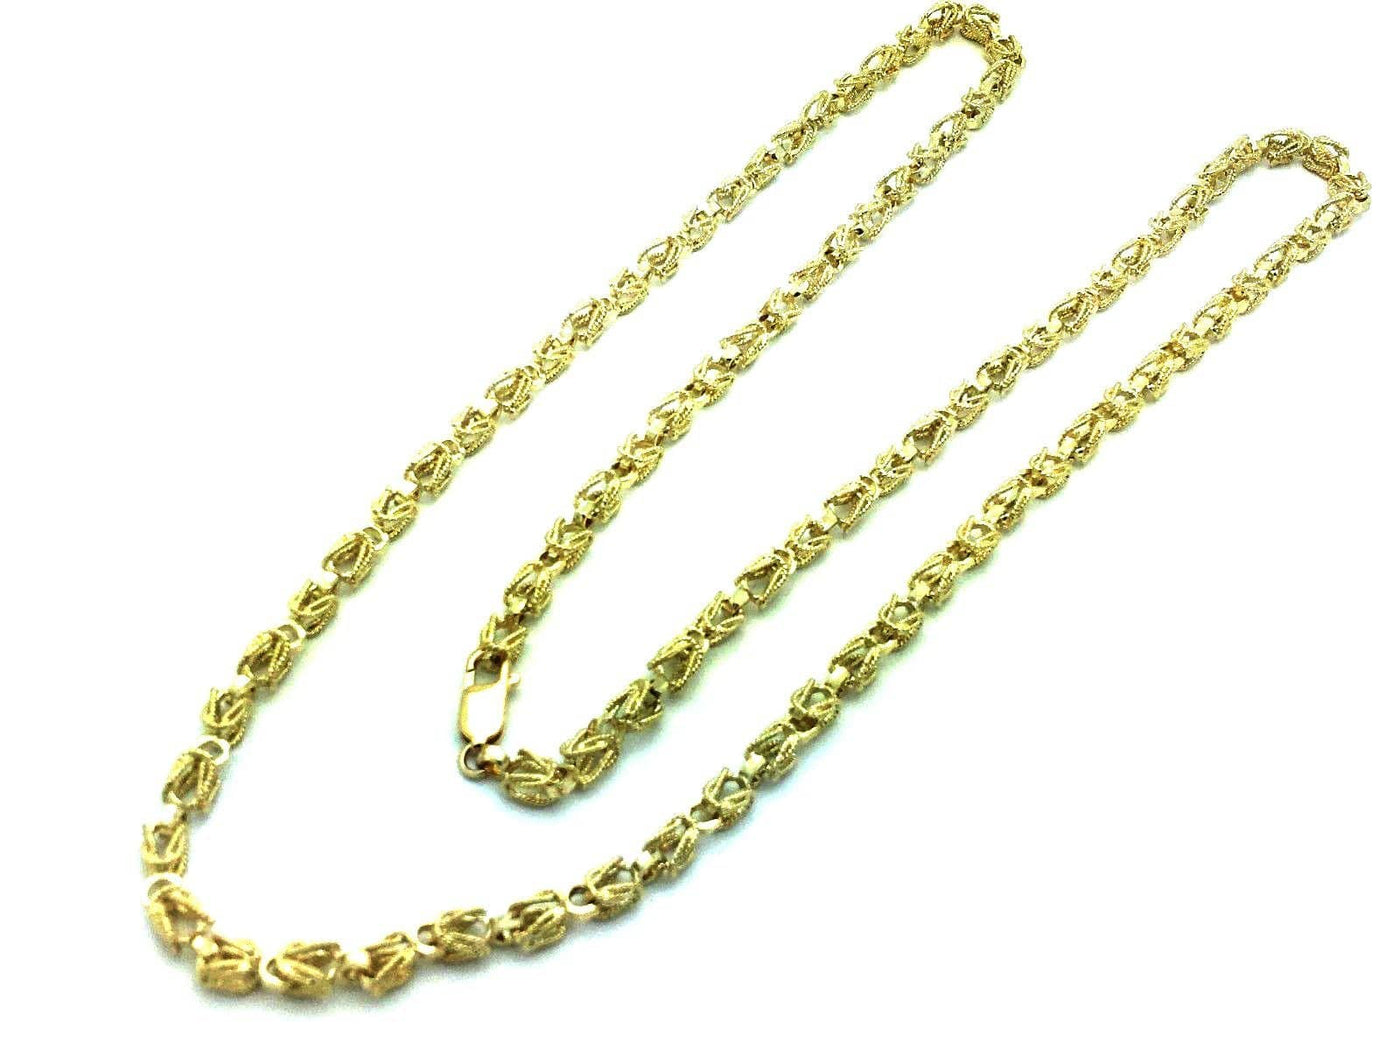 7MM Womens 10K Yellow Gold Turkish Style Link Chain Necklace 20